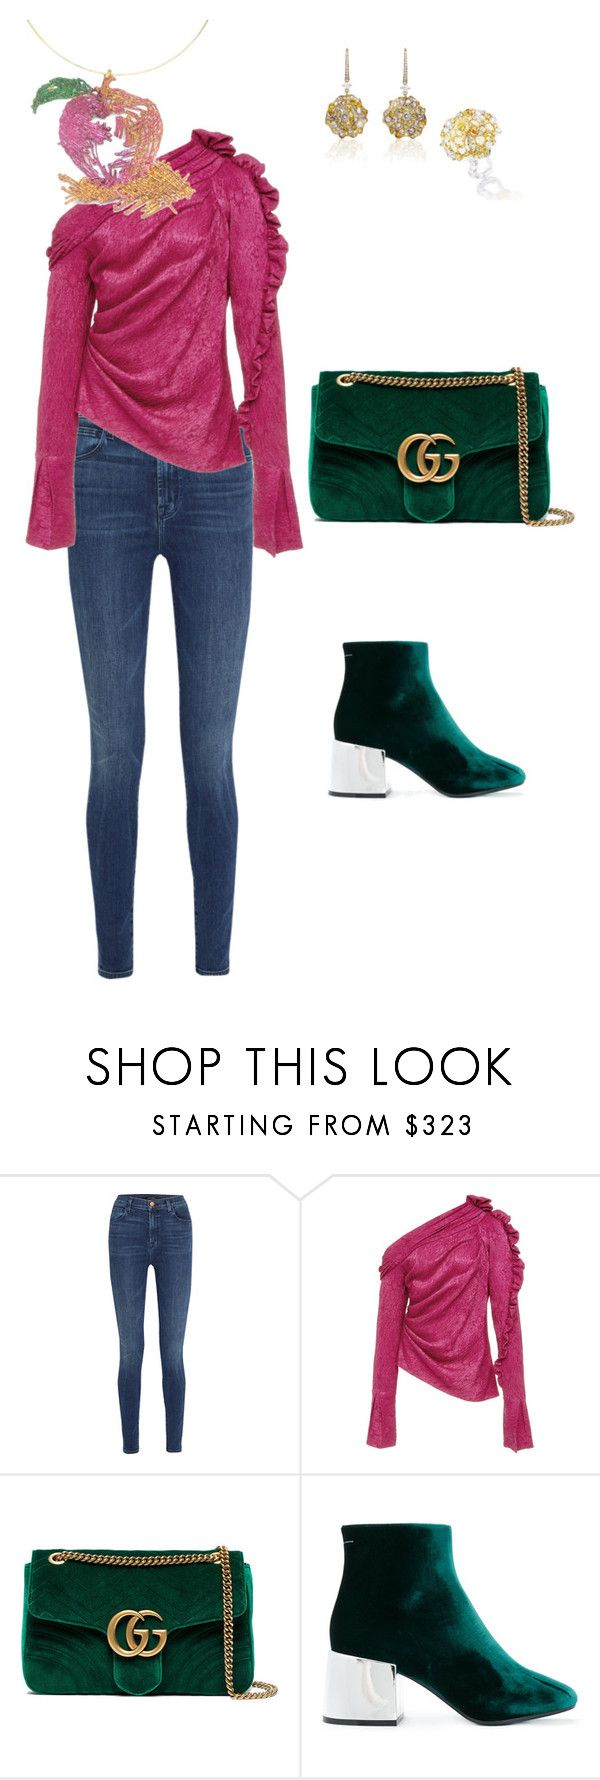 """""""apple sketch necklace, green velvet, denim casual"""" by kathsapeha on Polyvore featuring J Brand, Gucci, Anna Hu and MM6 Maison Margiela"""